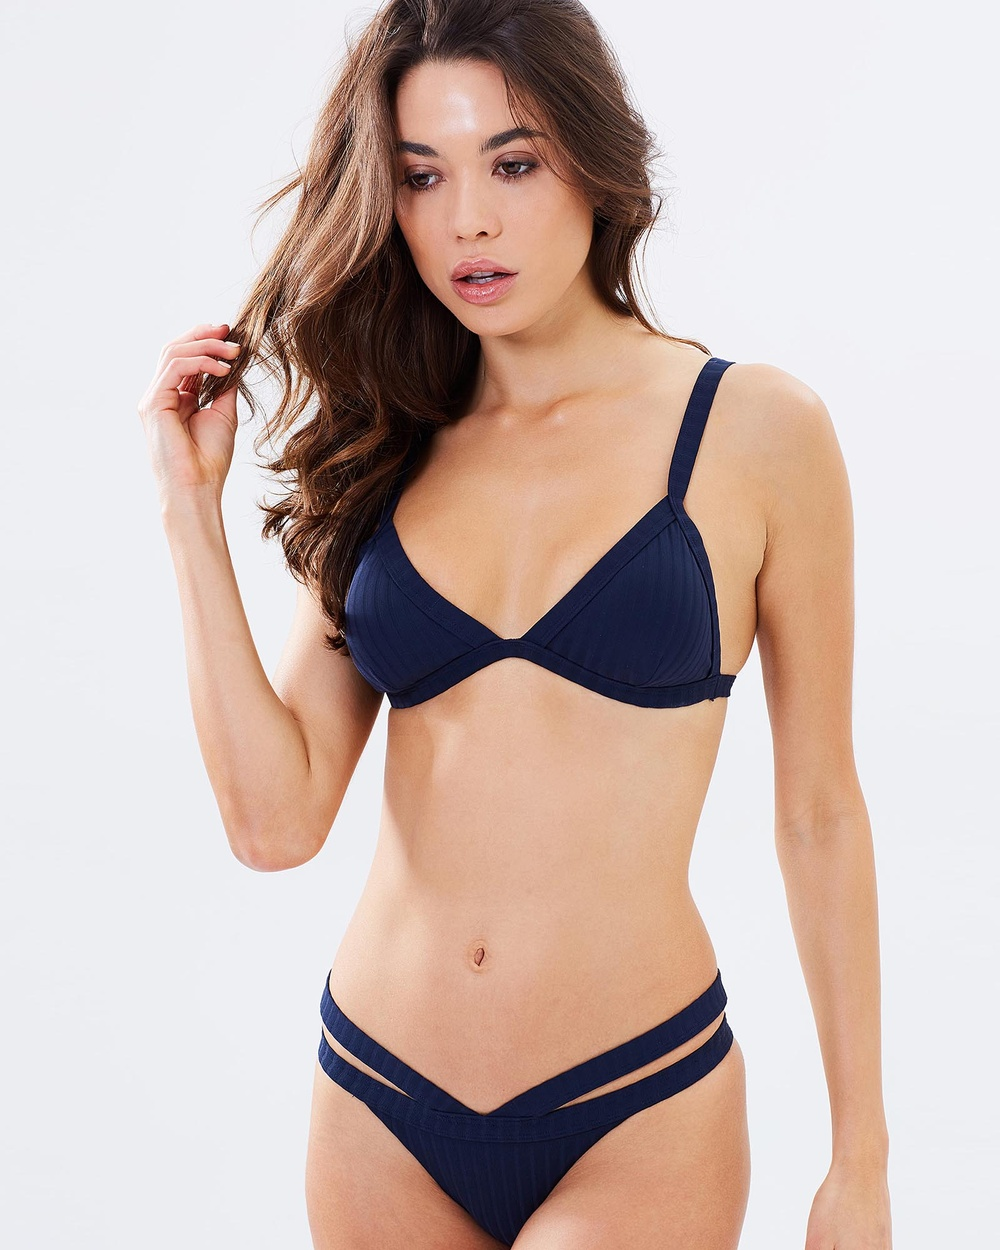 Bond-Eye Swimwear Baddie Rib Bralet Bikini Tops Midnight Baddie Rib Bralet